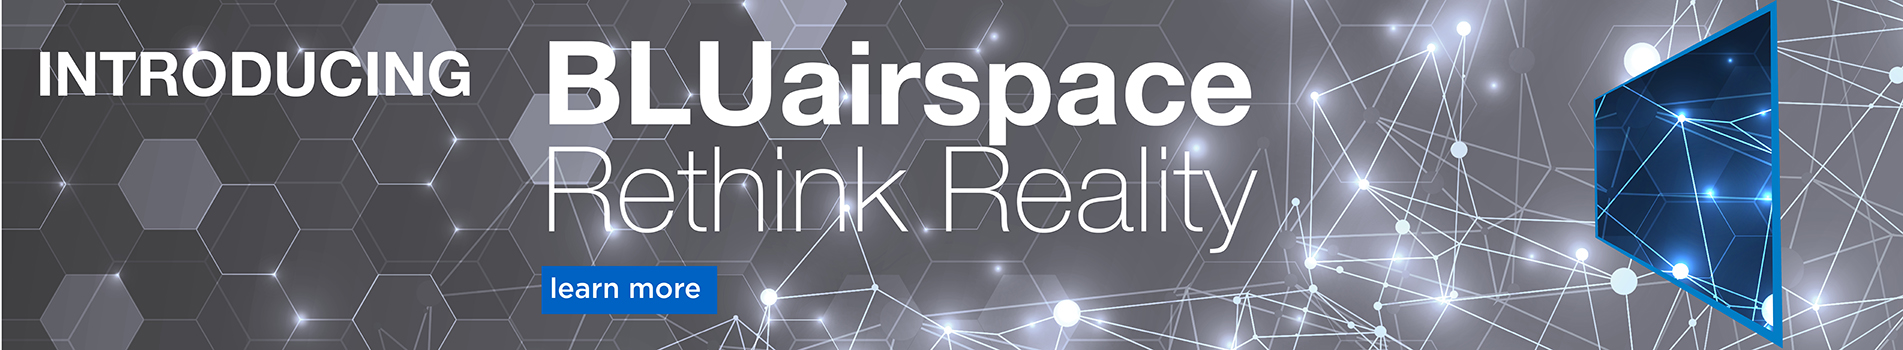 Introducing BLUairspace Rethink Reality